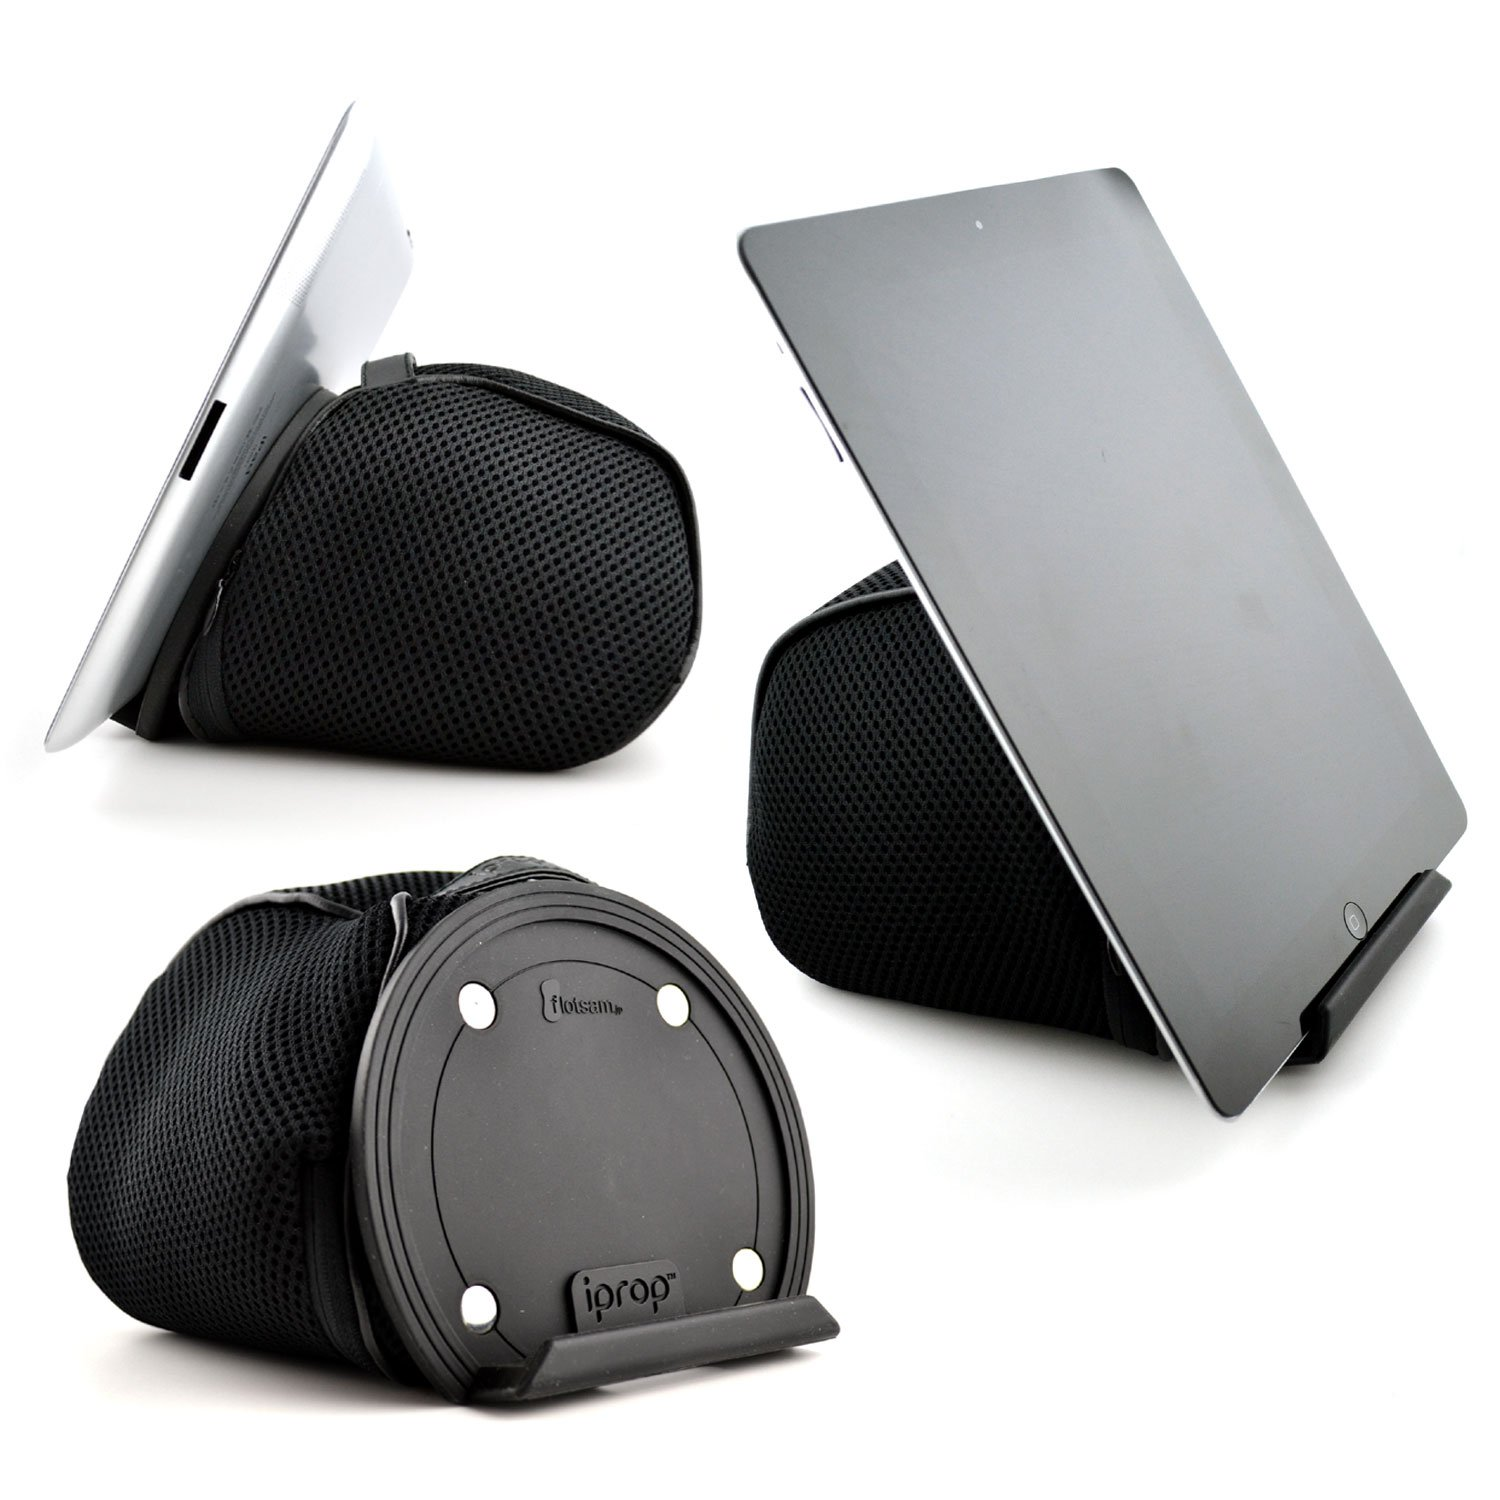 ipad bed lap stand by iprop bean bag universal